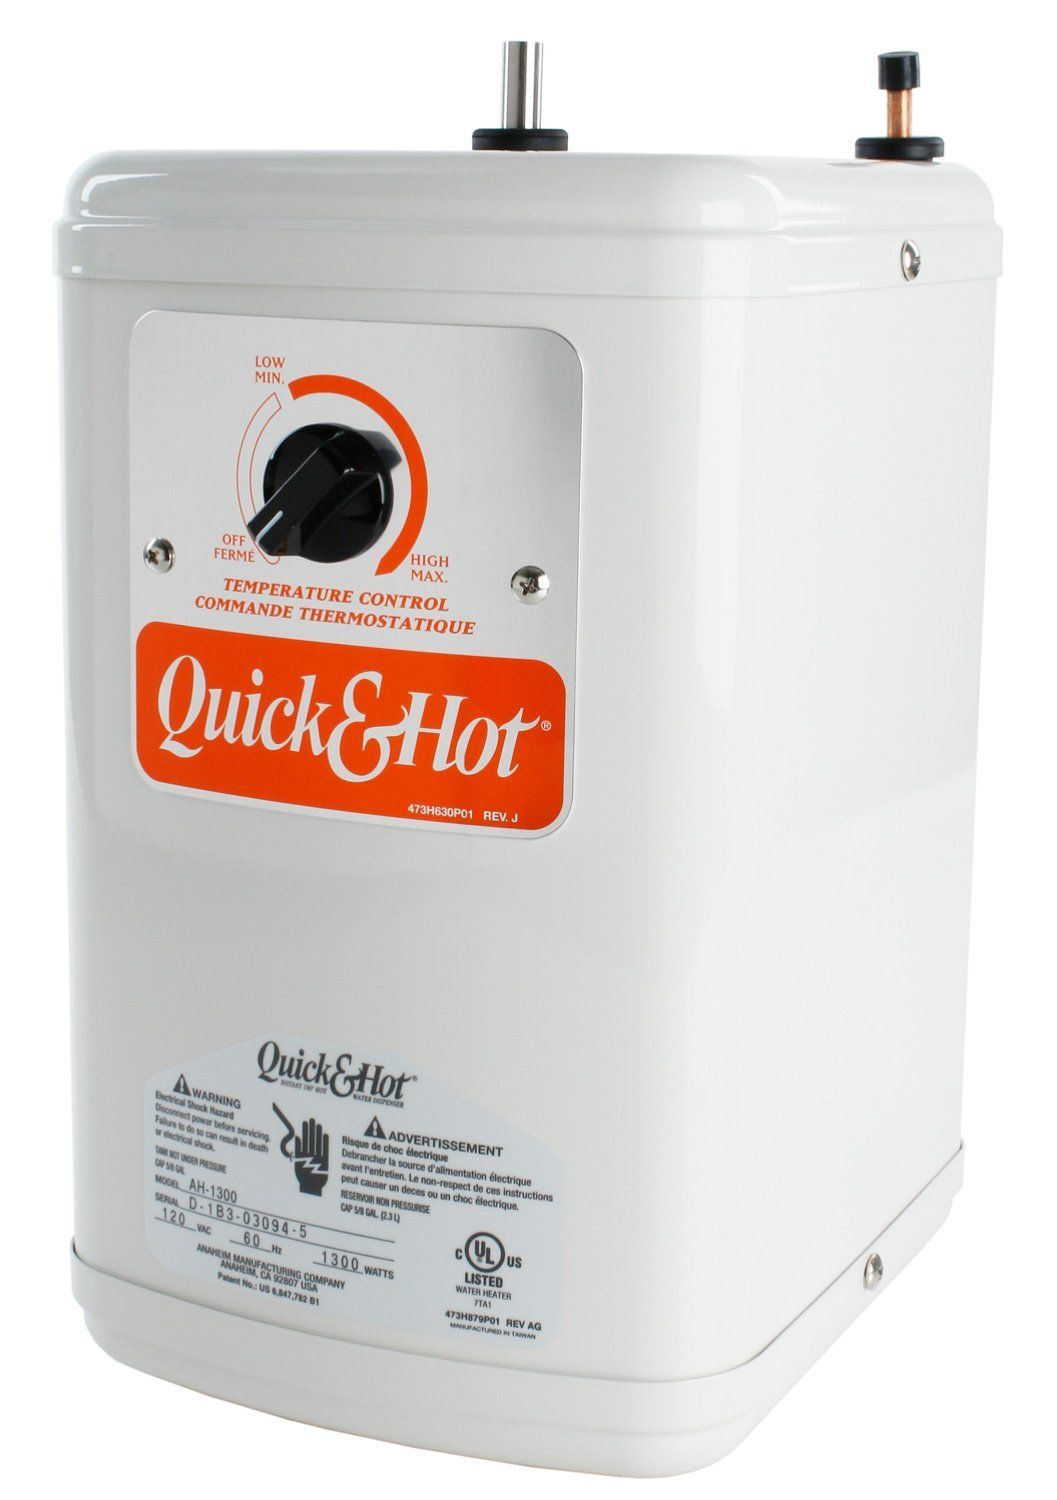 Anaheim Ah 1300 Quick And Hot Instant Hot Water Tank Hot Water Only Dispensers Amazon Com Water Tank Hot Water Water Heater Repair